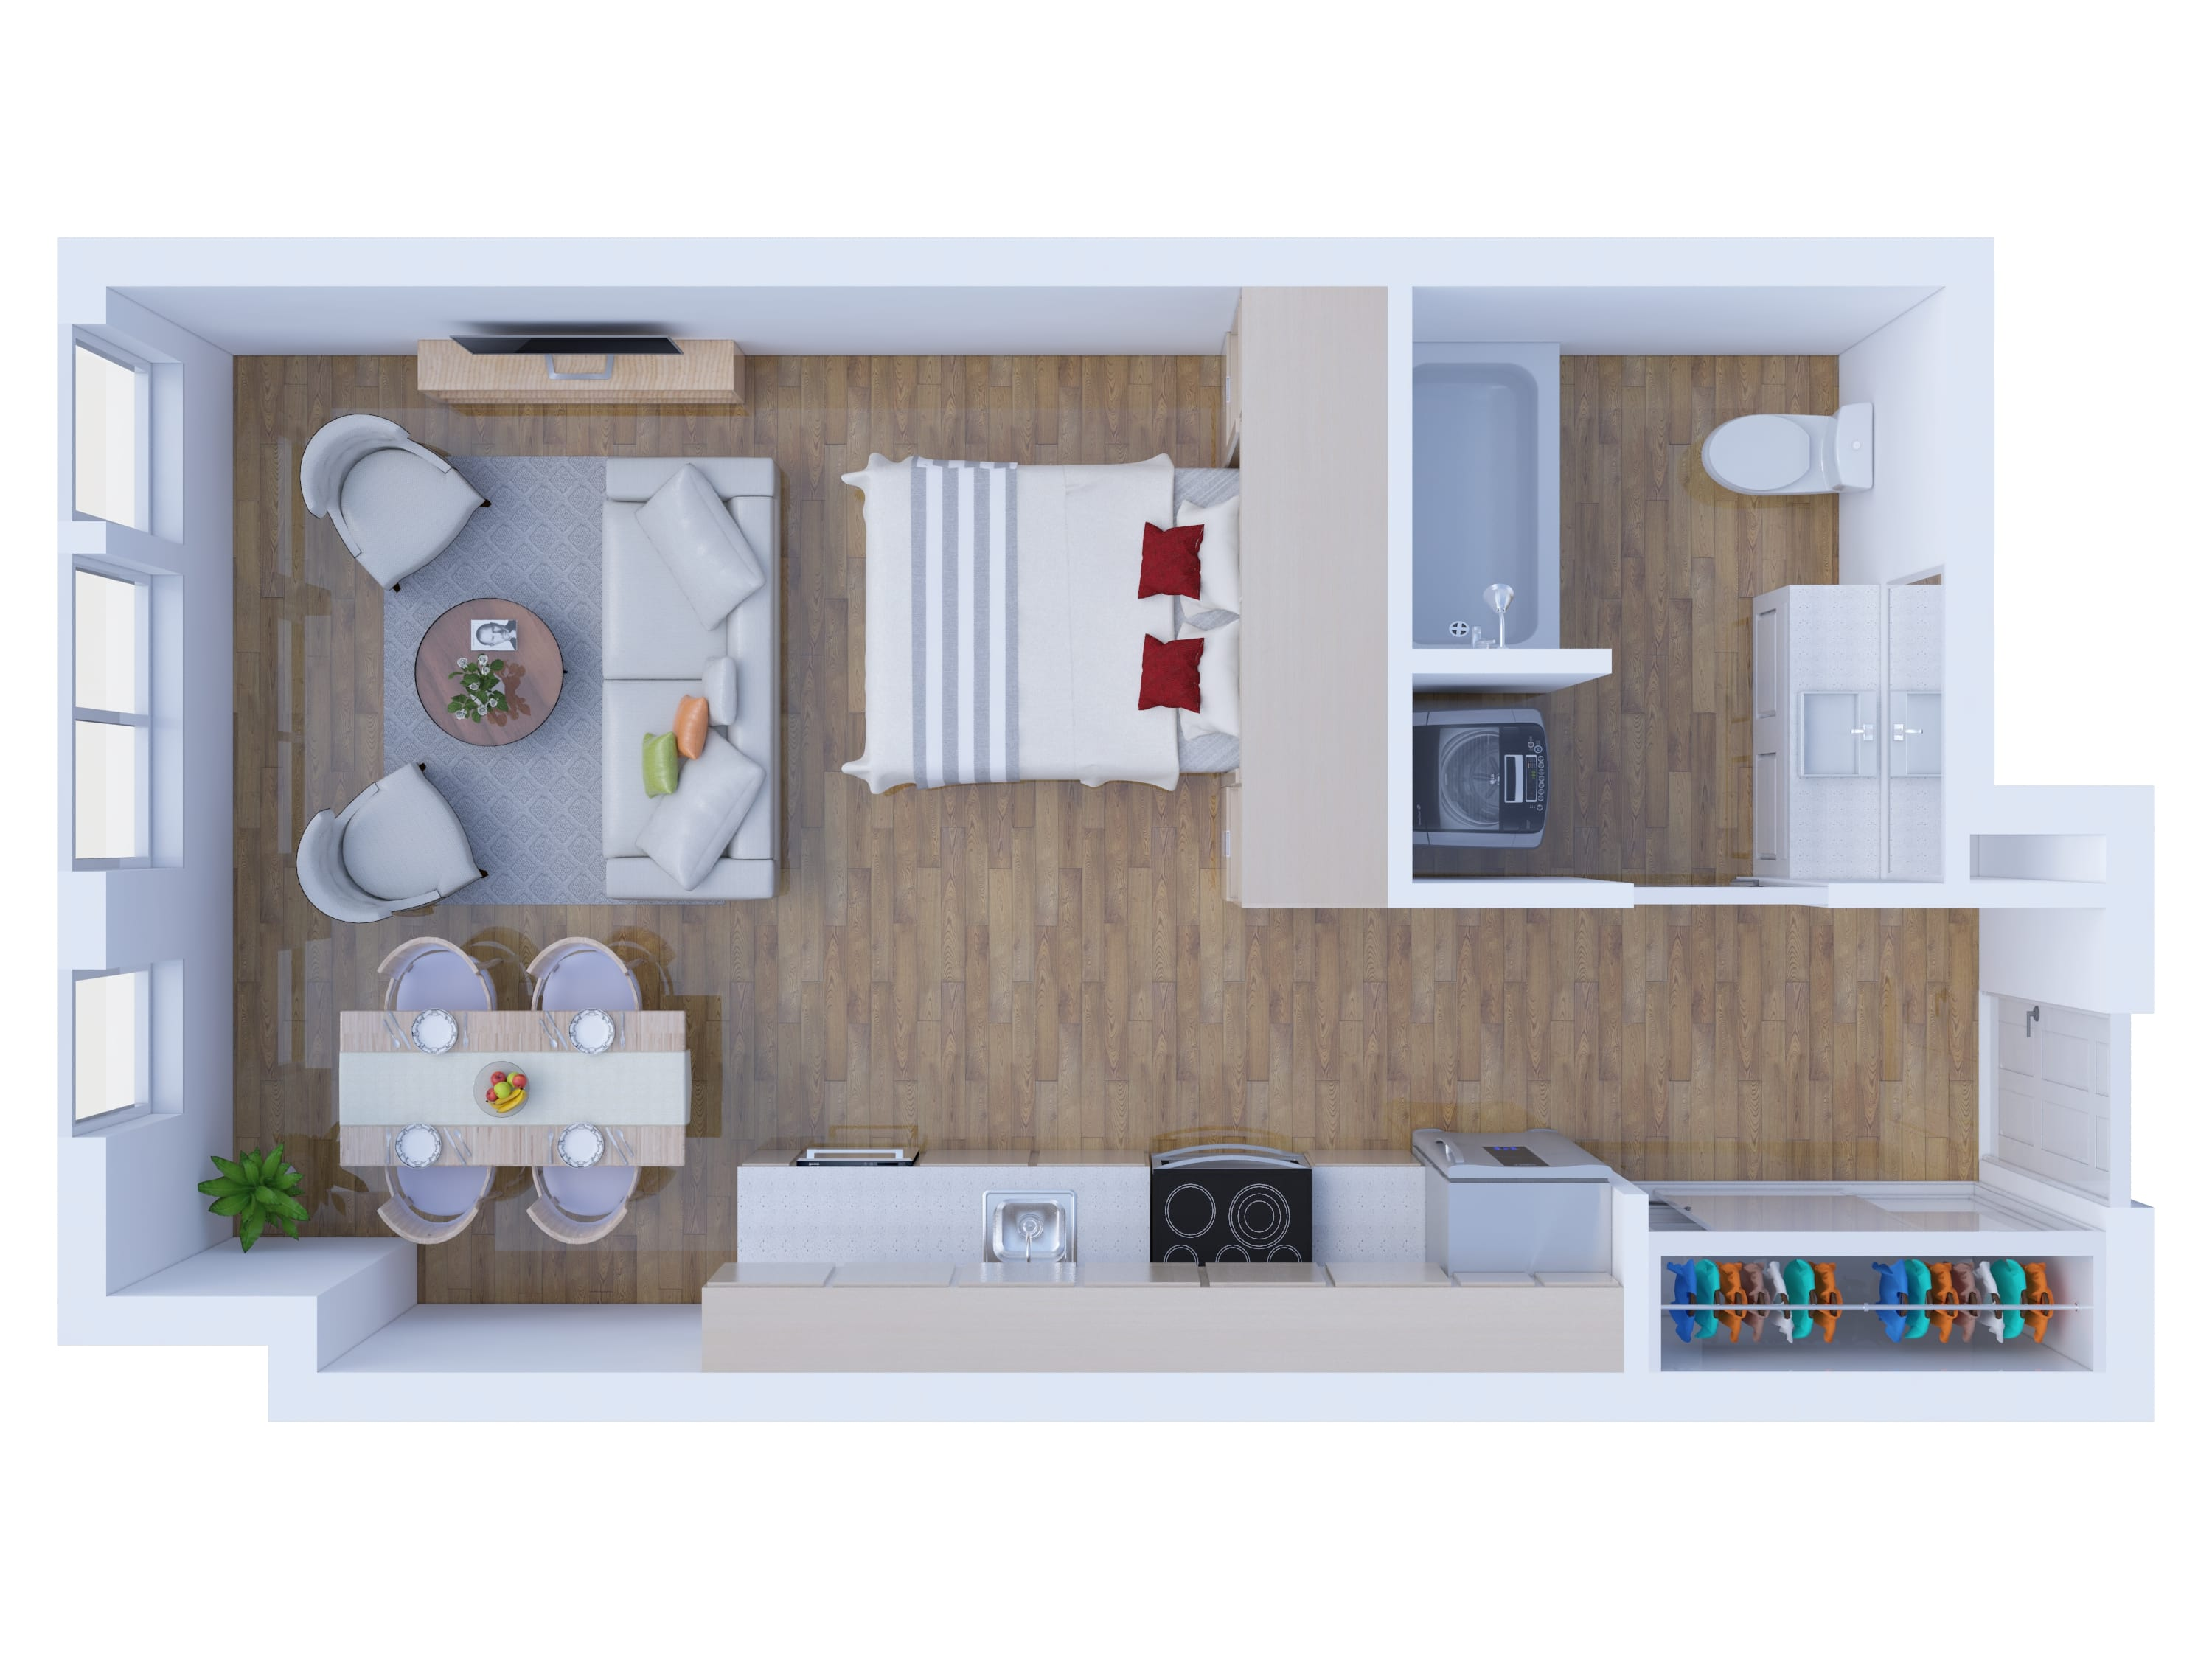 3 Bedroom Apartment Floor Plans – 2D